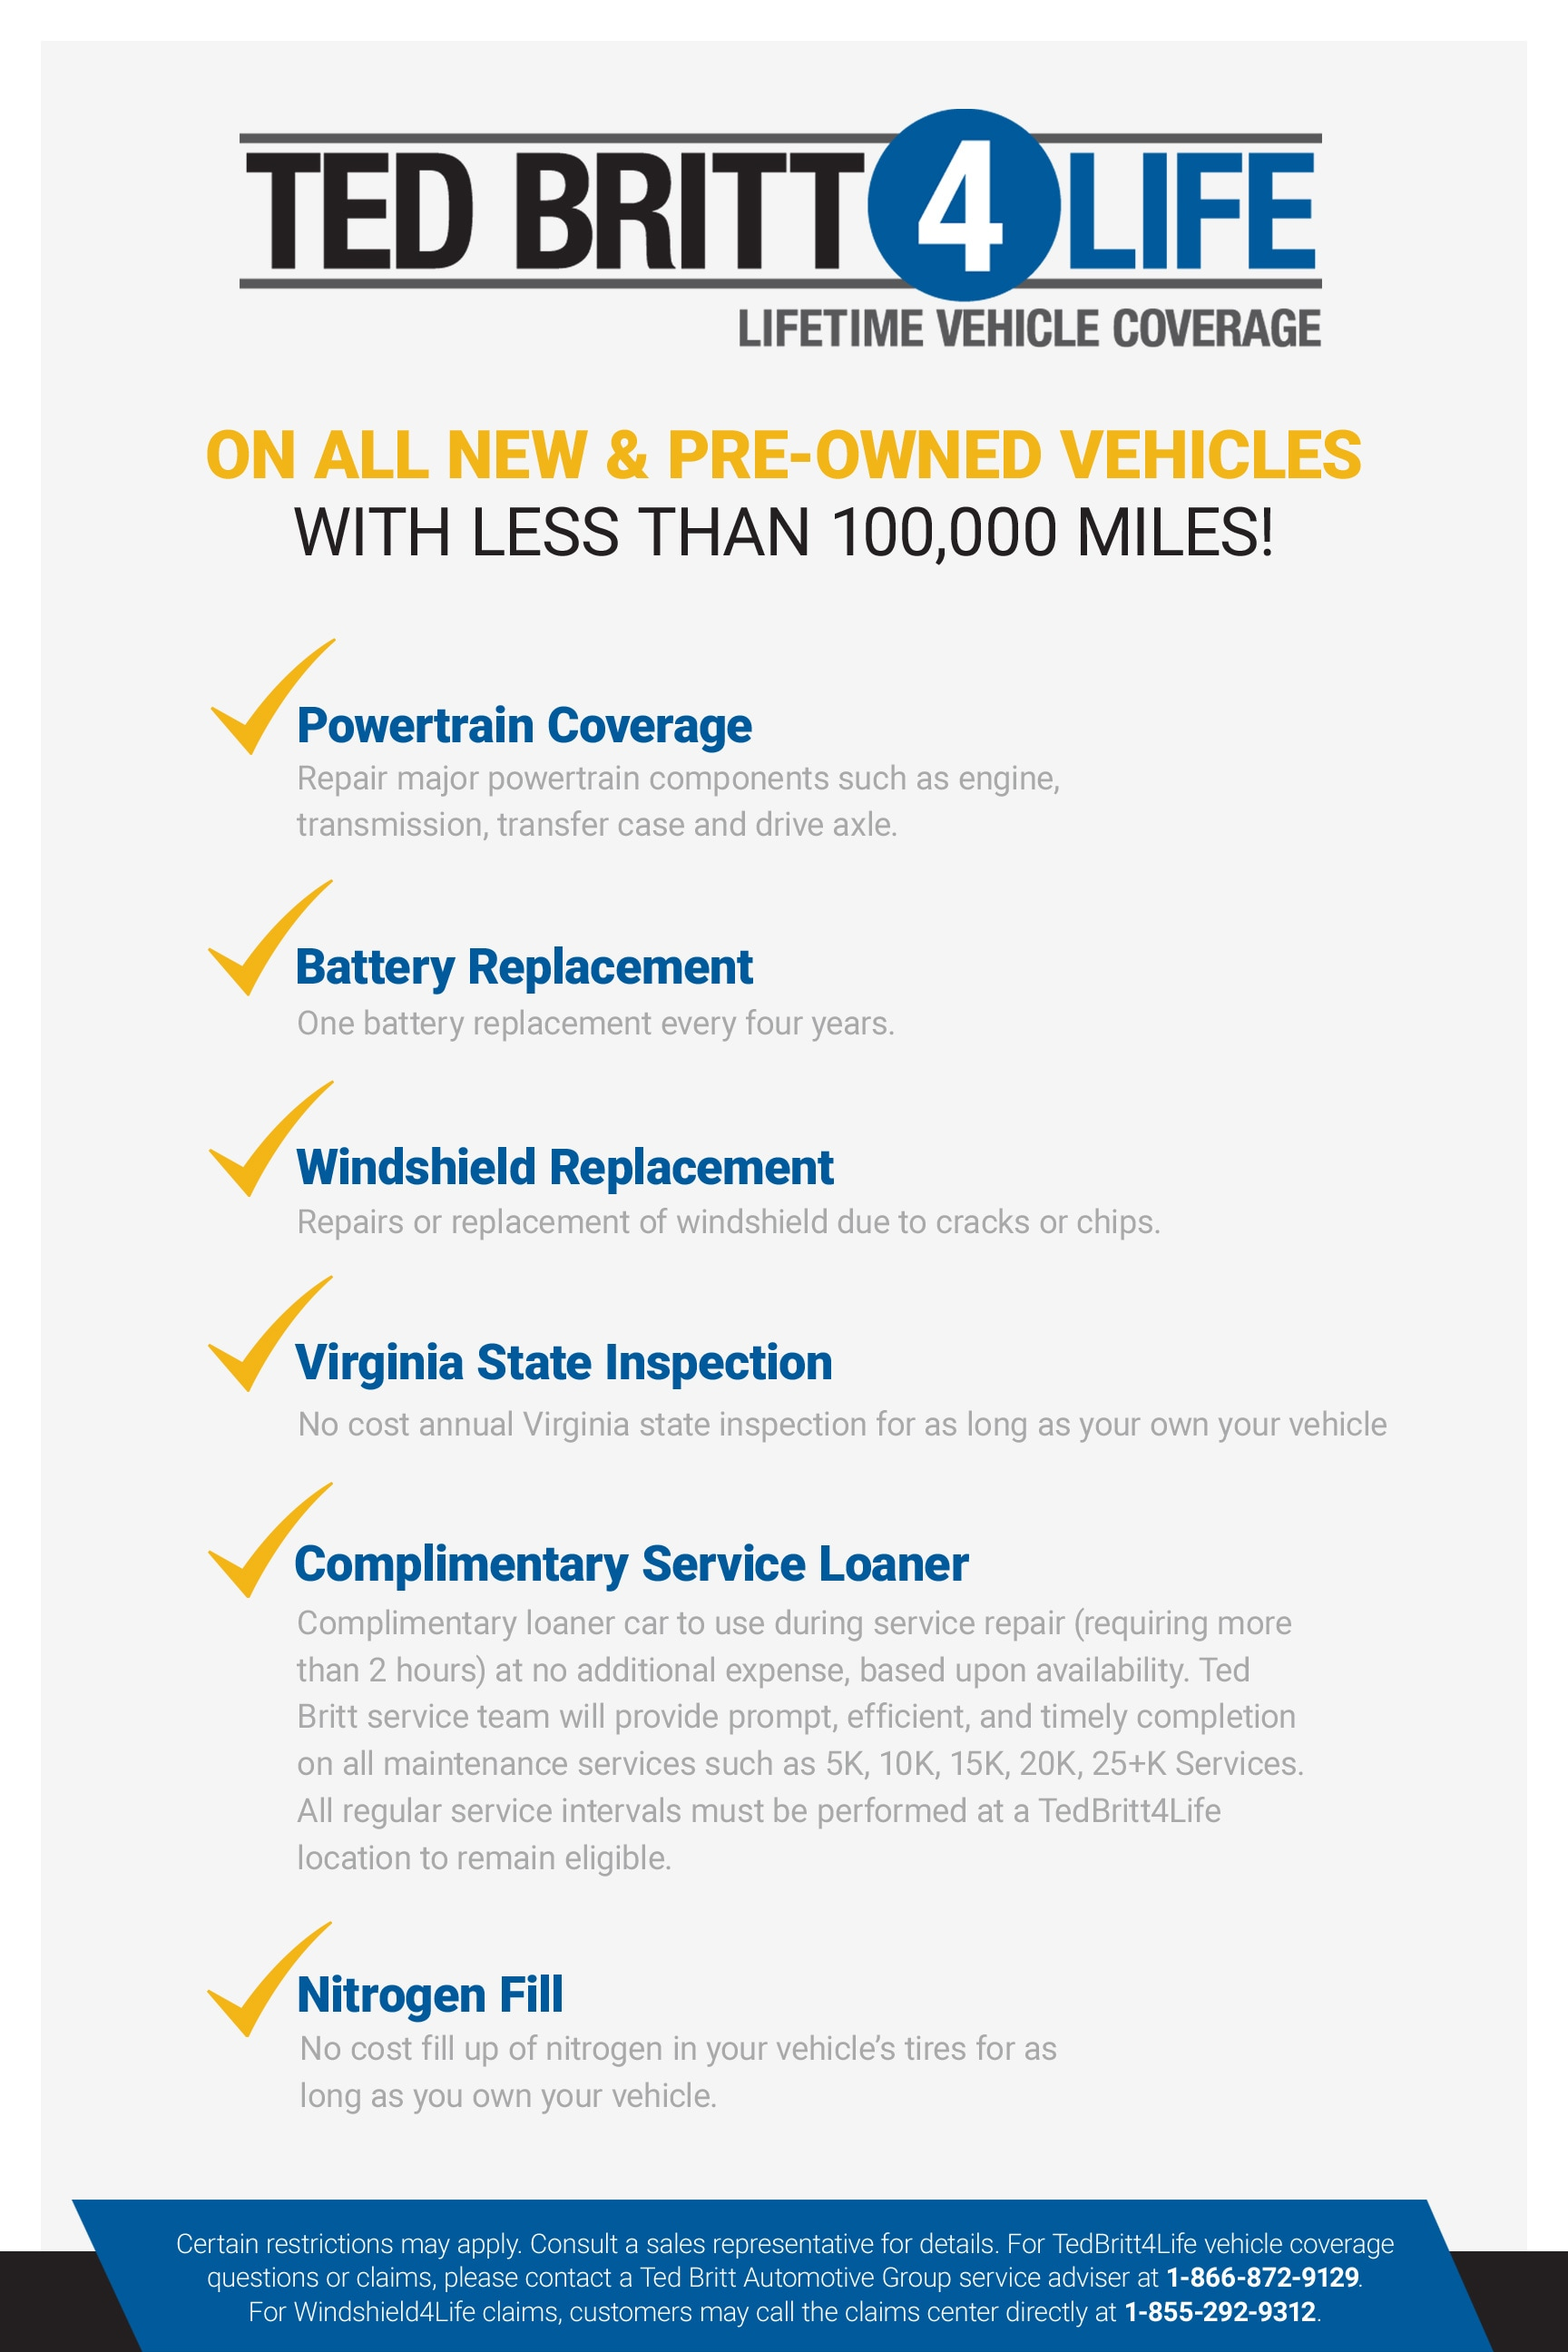 How To Get Your Car Inspected In Va